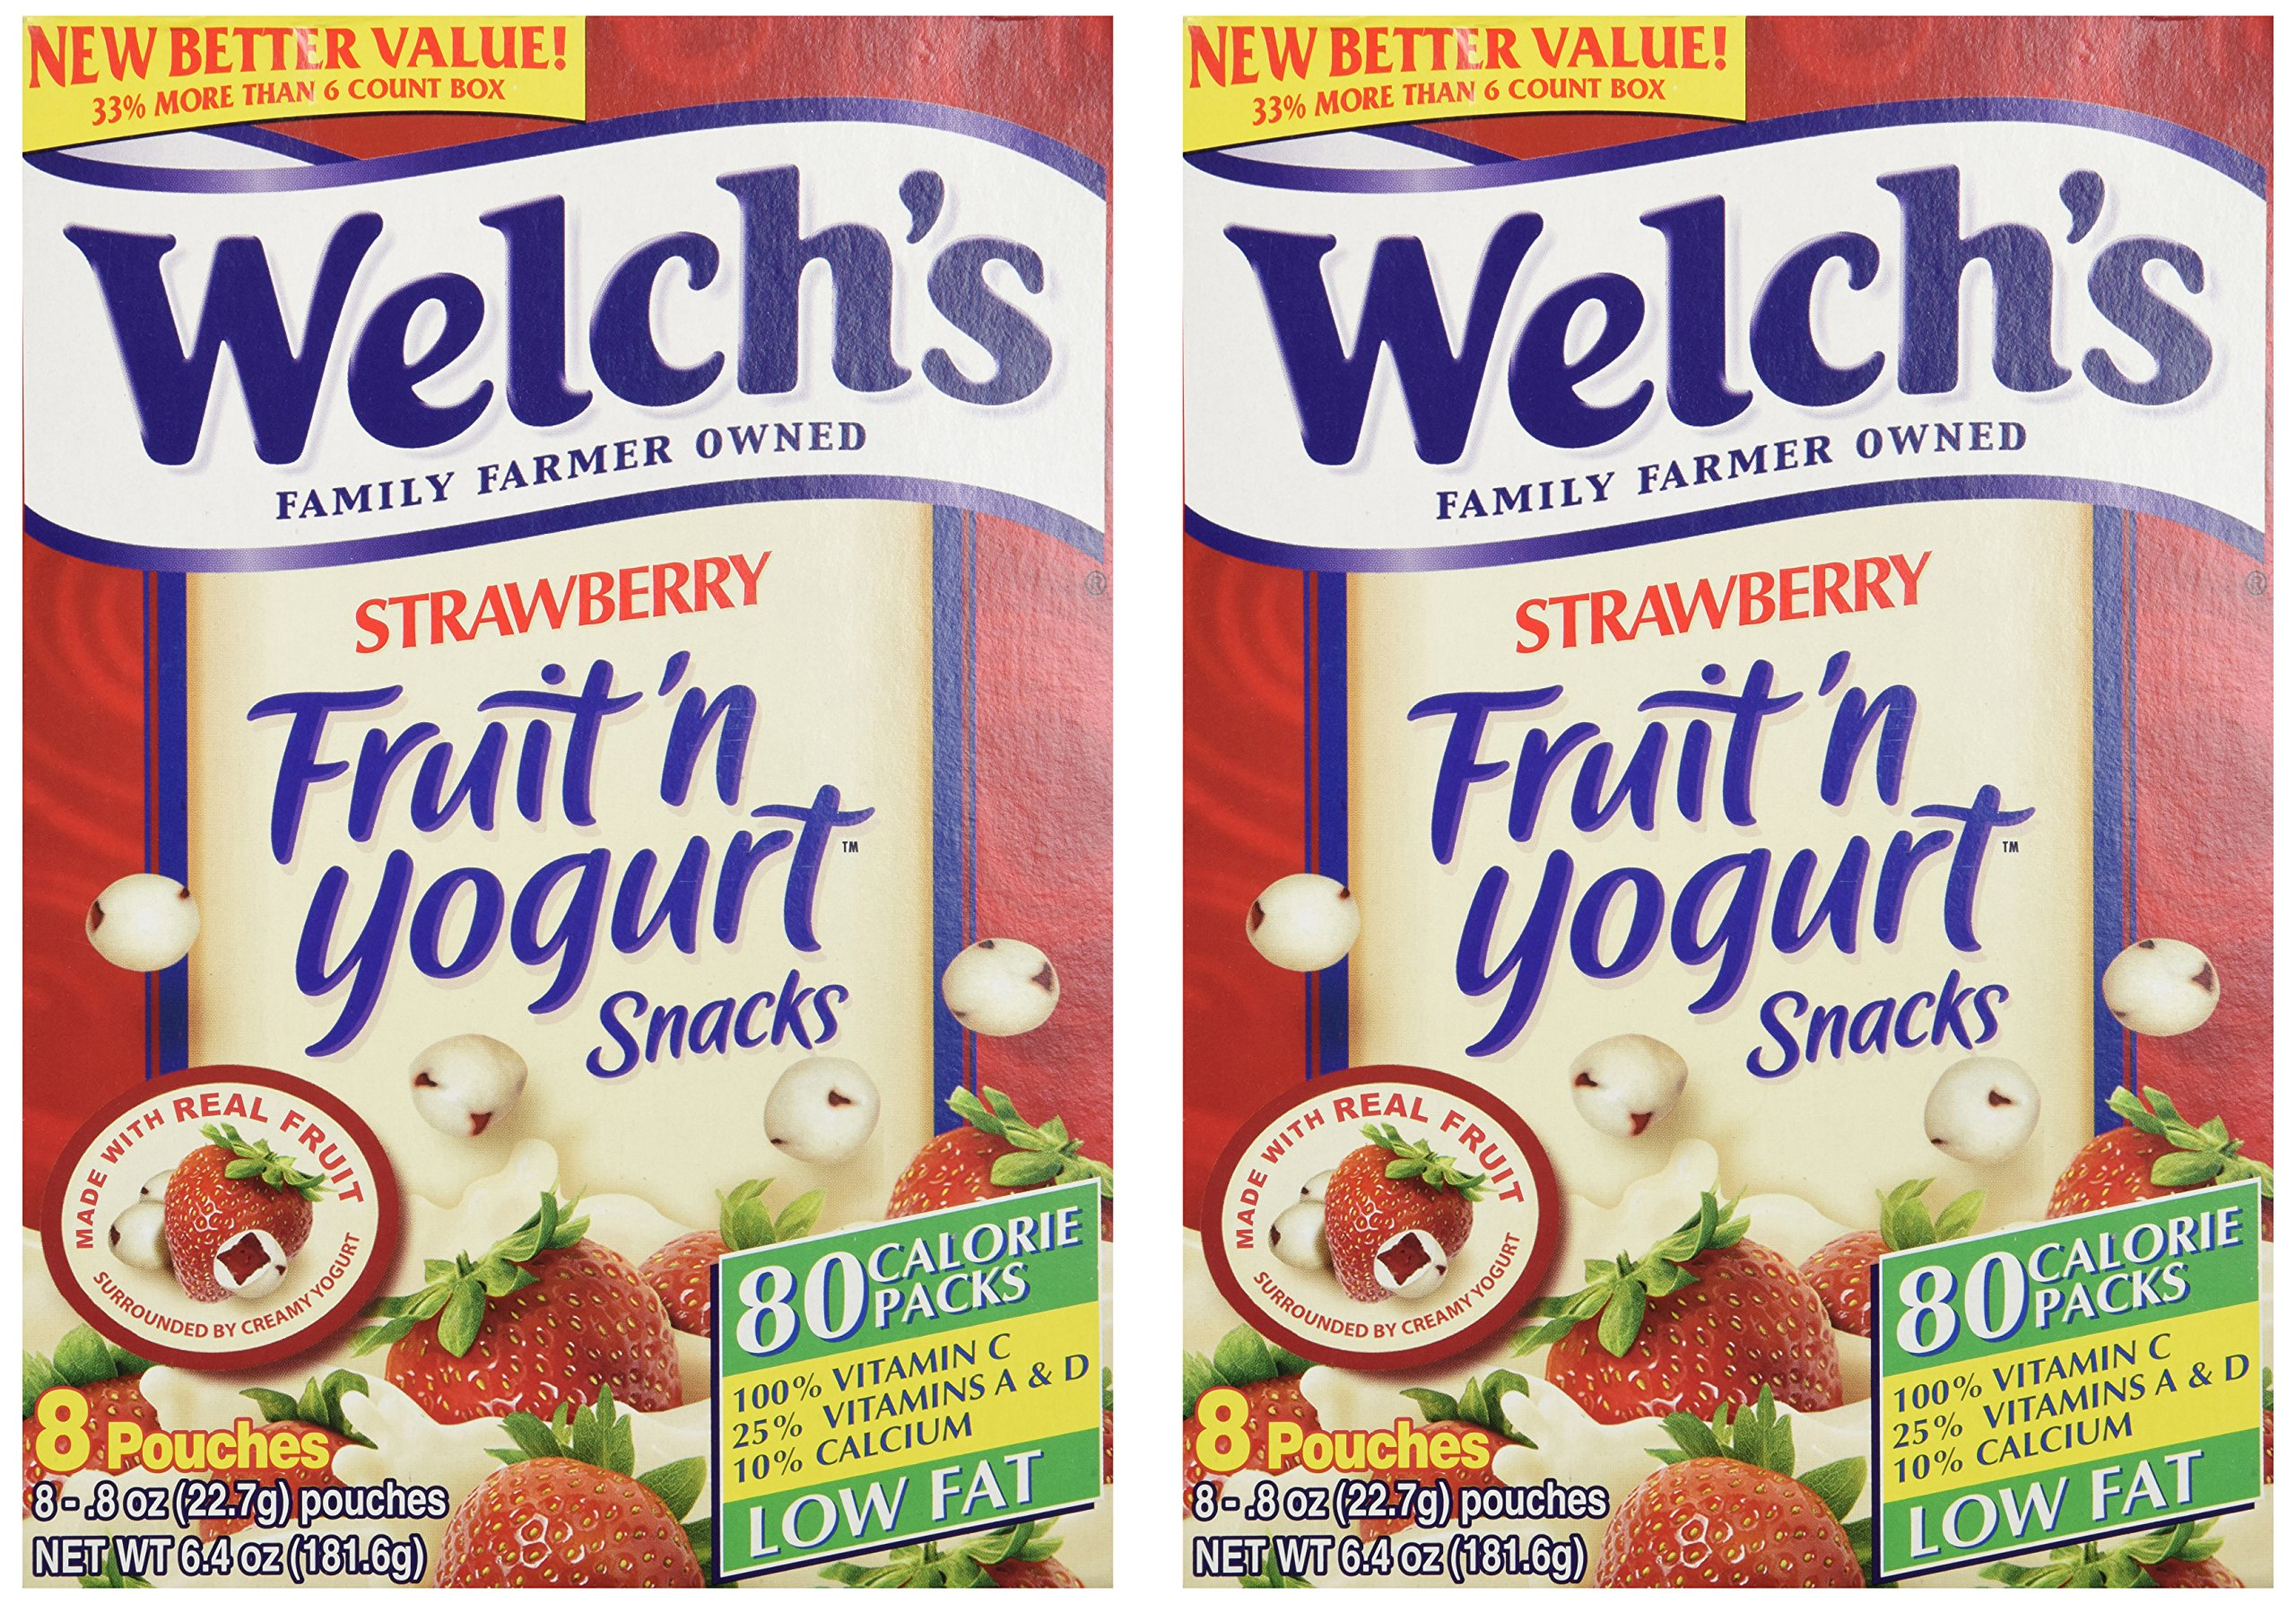 Welch's Strawberry Fruit'n Yogurt Snacks 8 Pouches (2 Pack - 16 Pouches Total) by Welch's